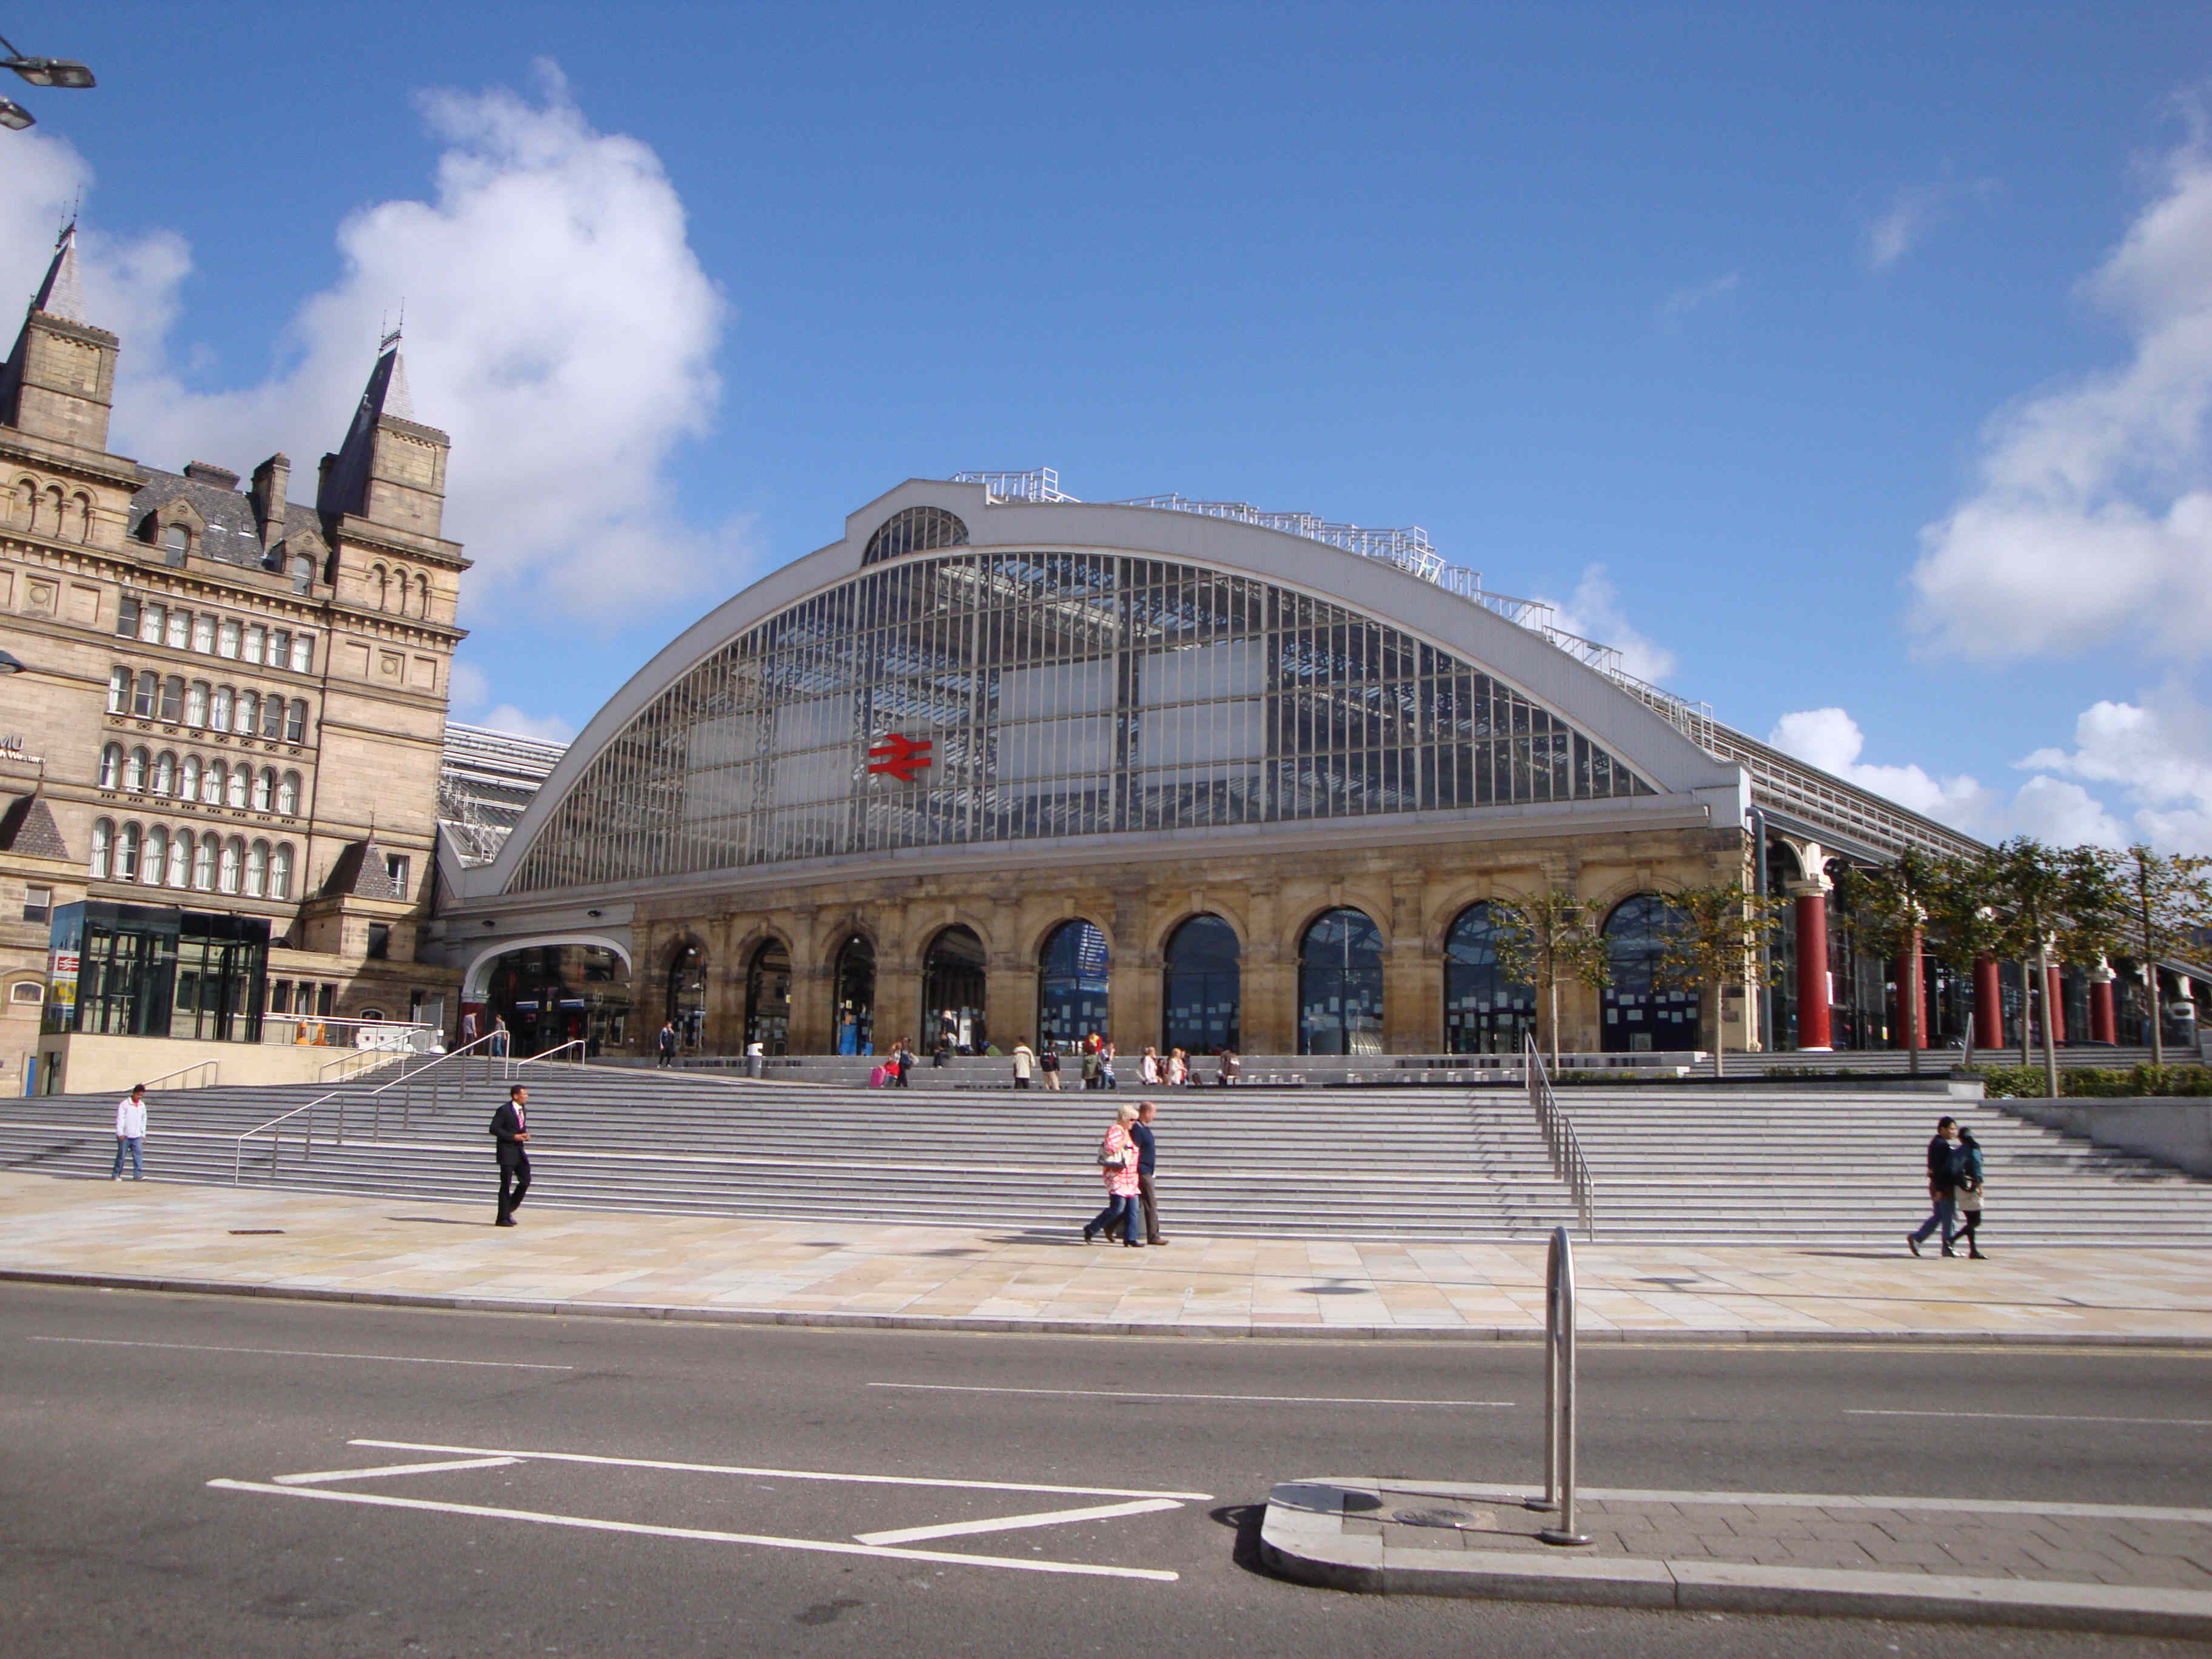 Lime Street Station.